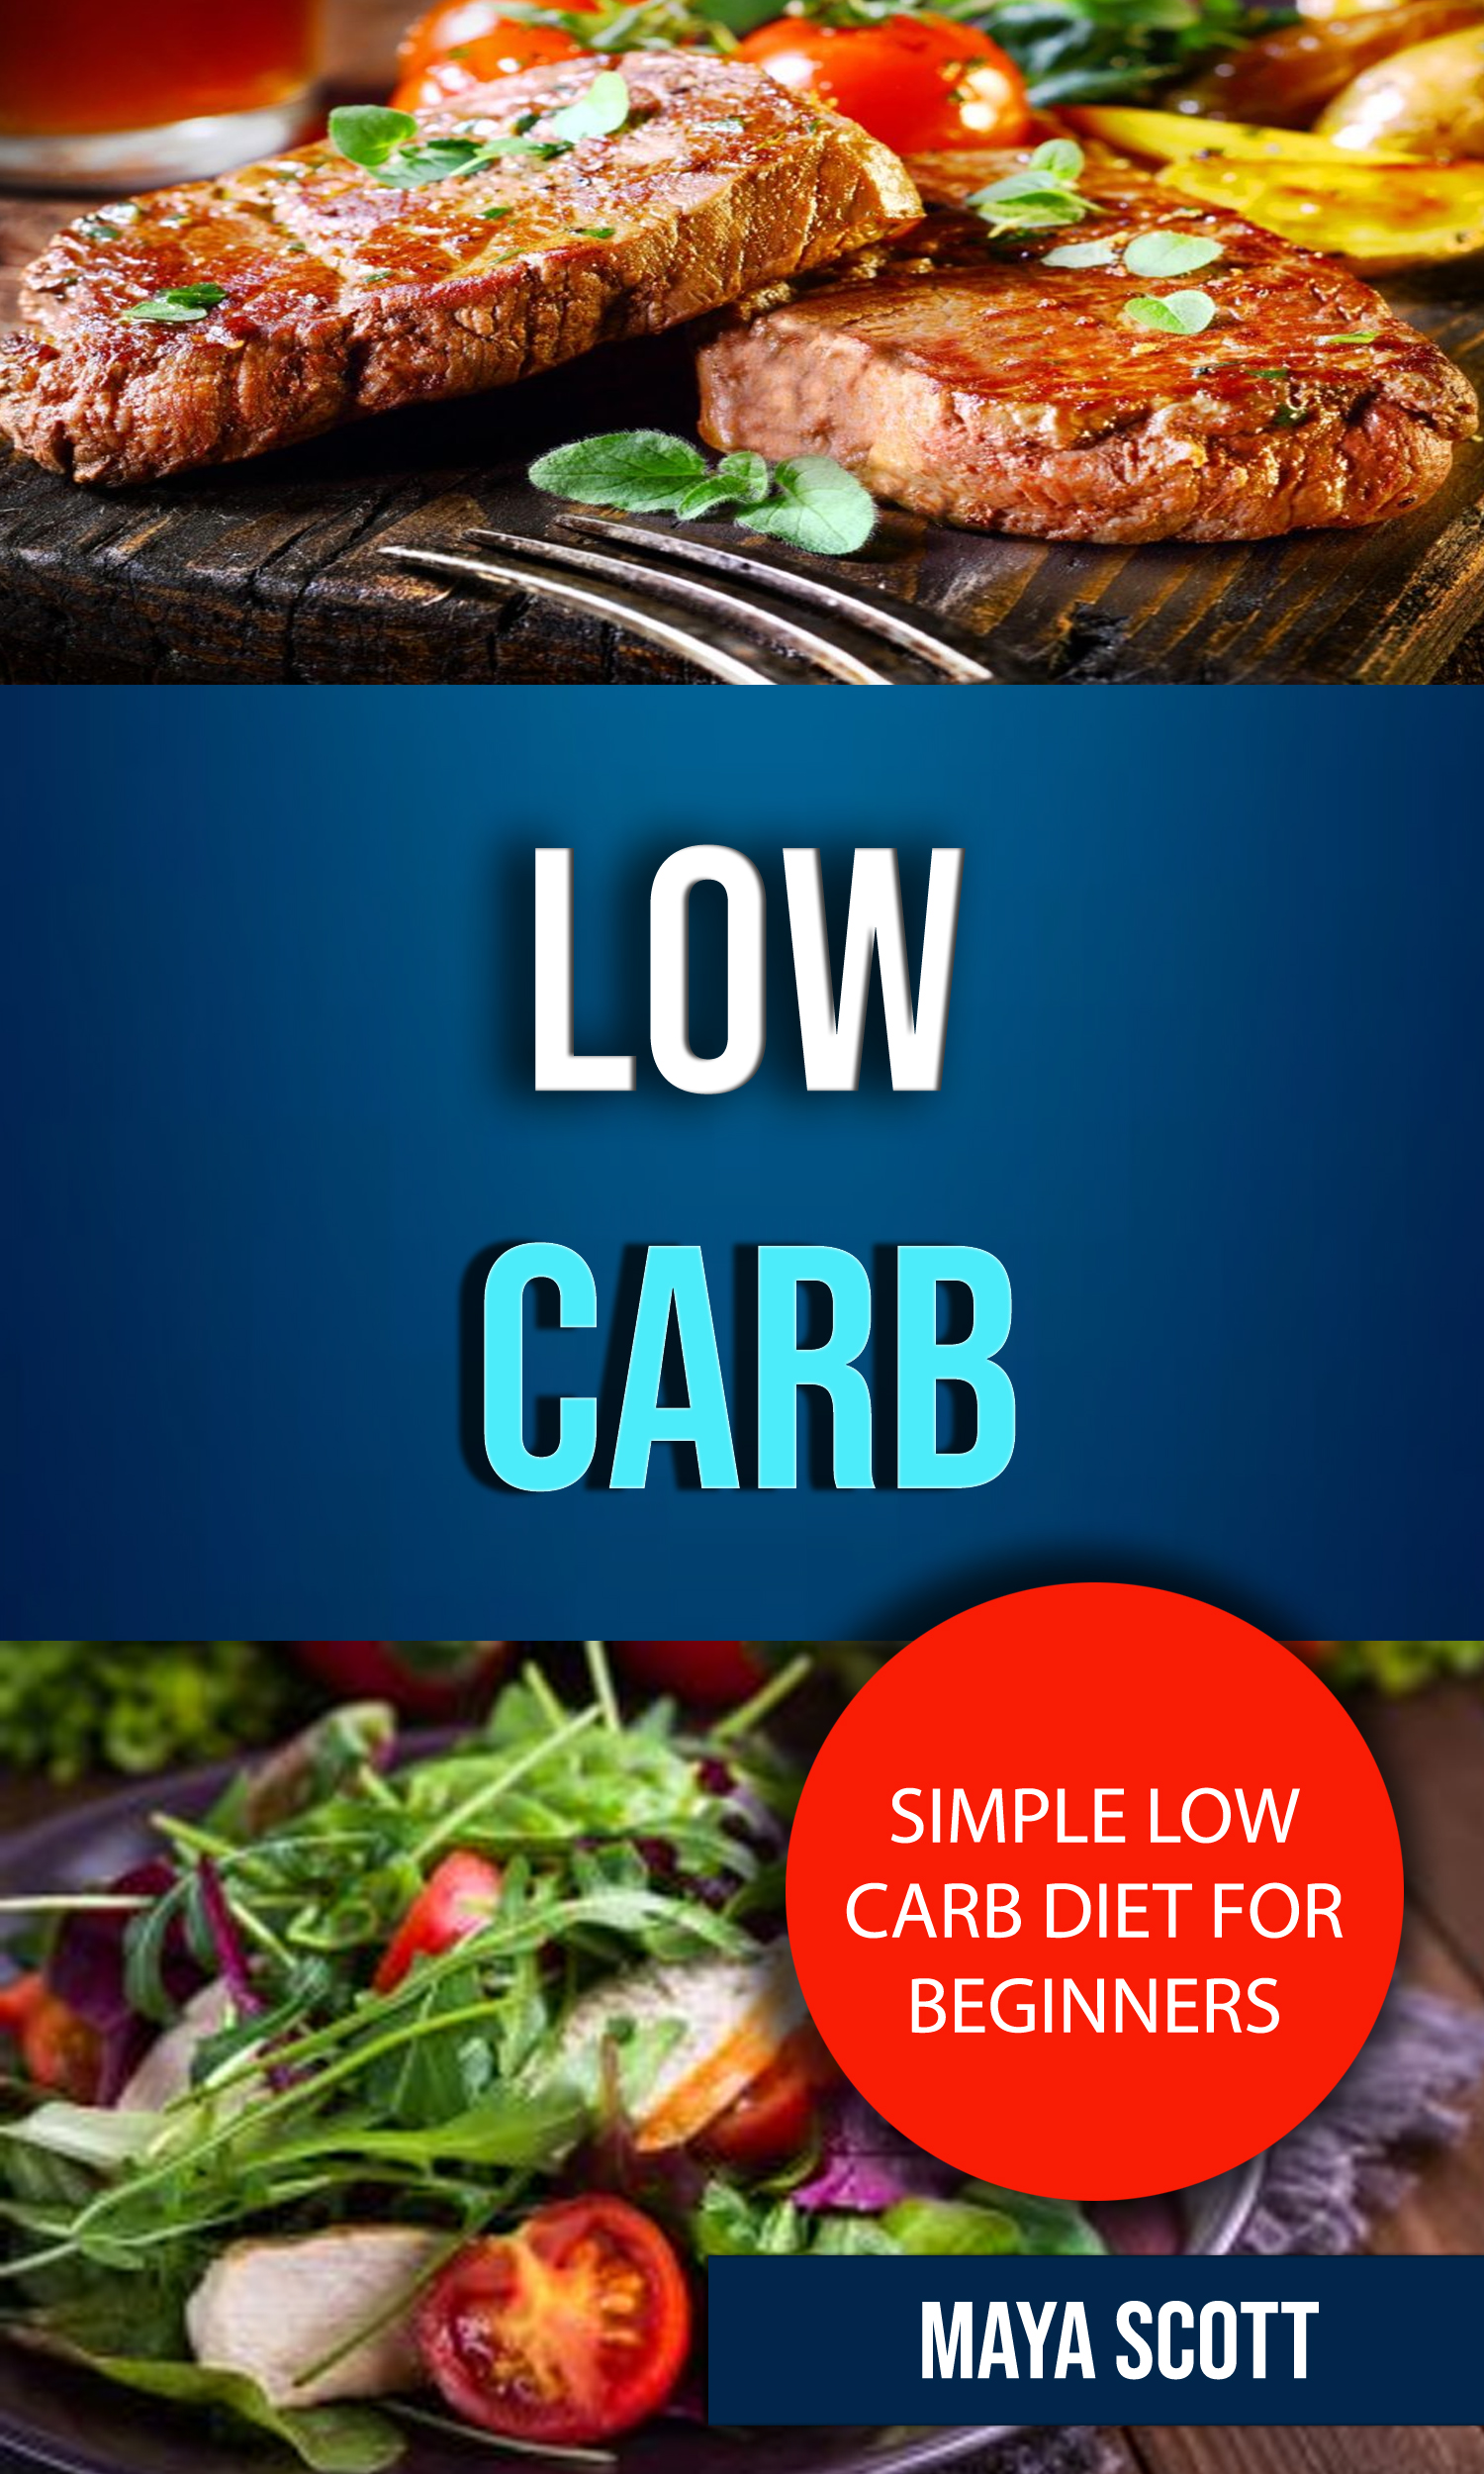 Low carb: simple low carb diet for beginners